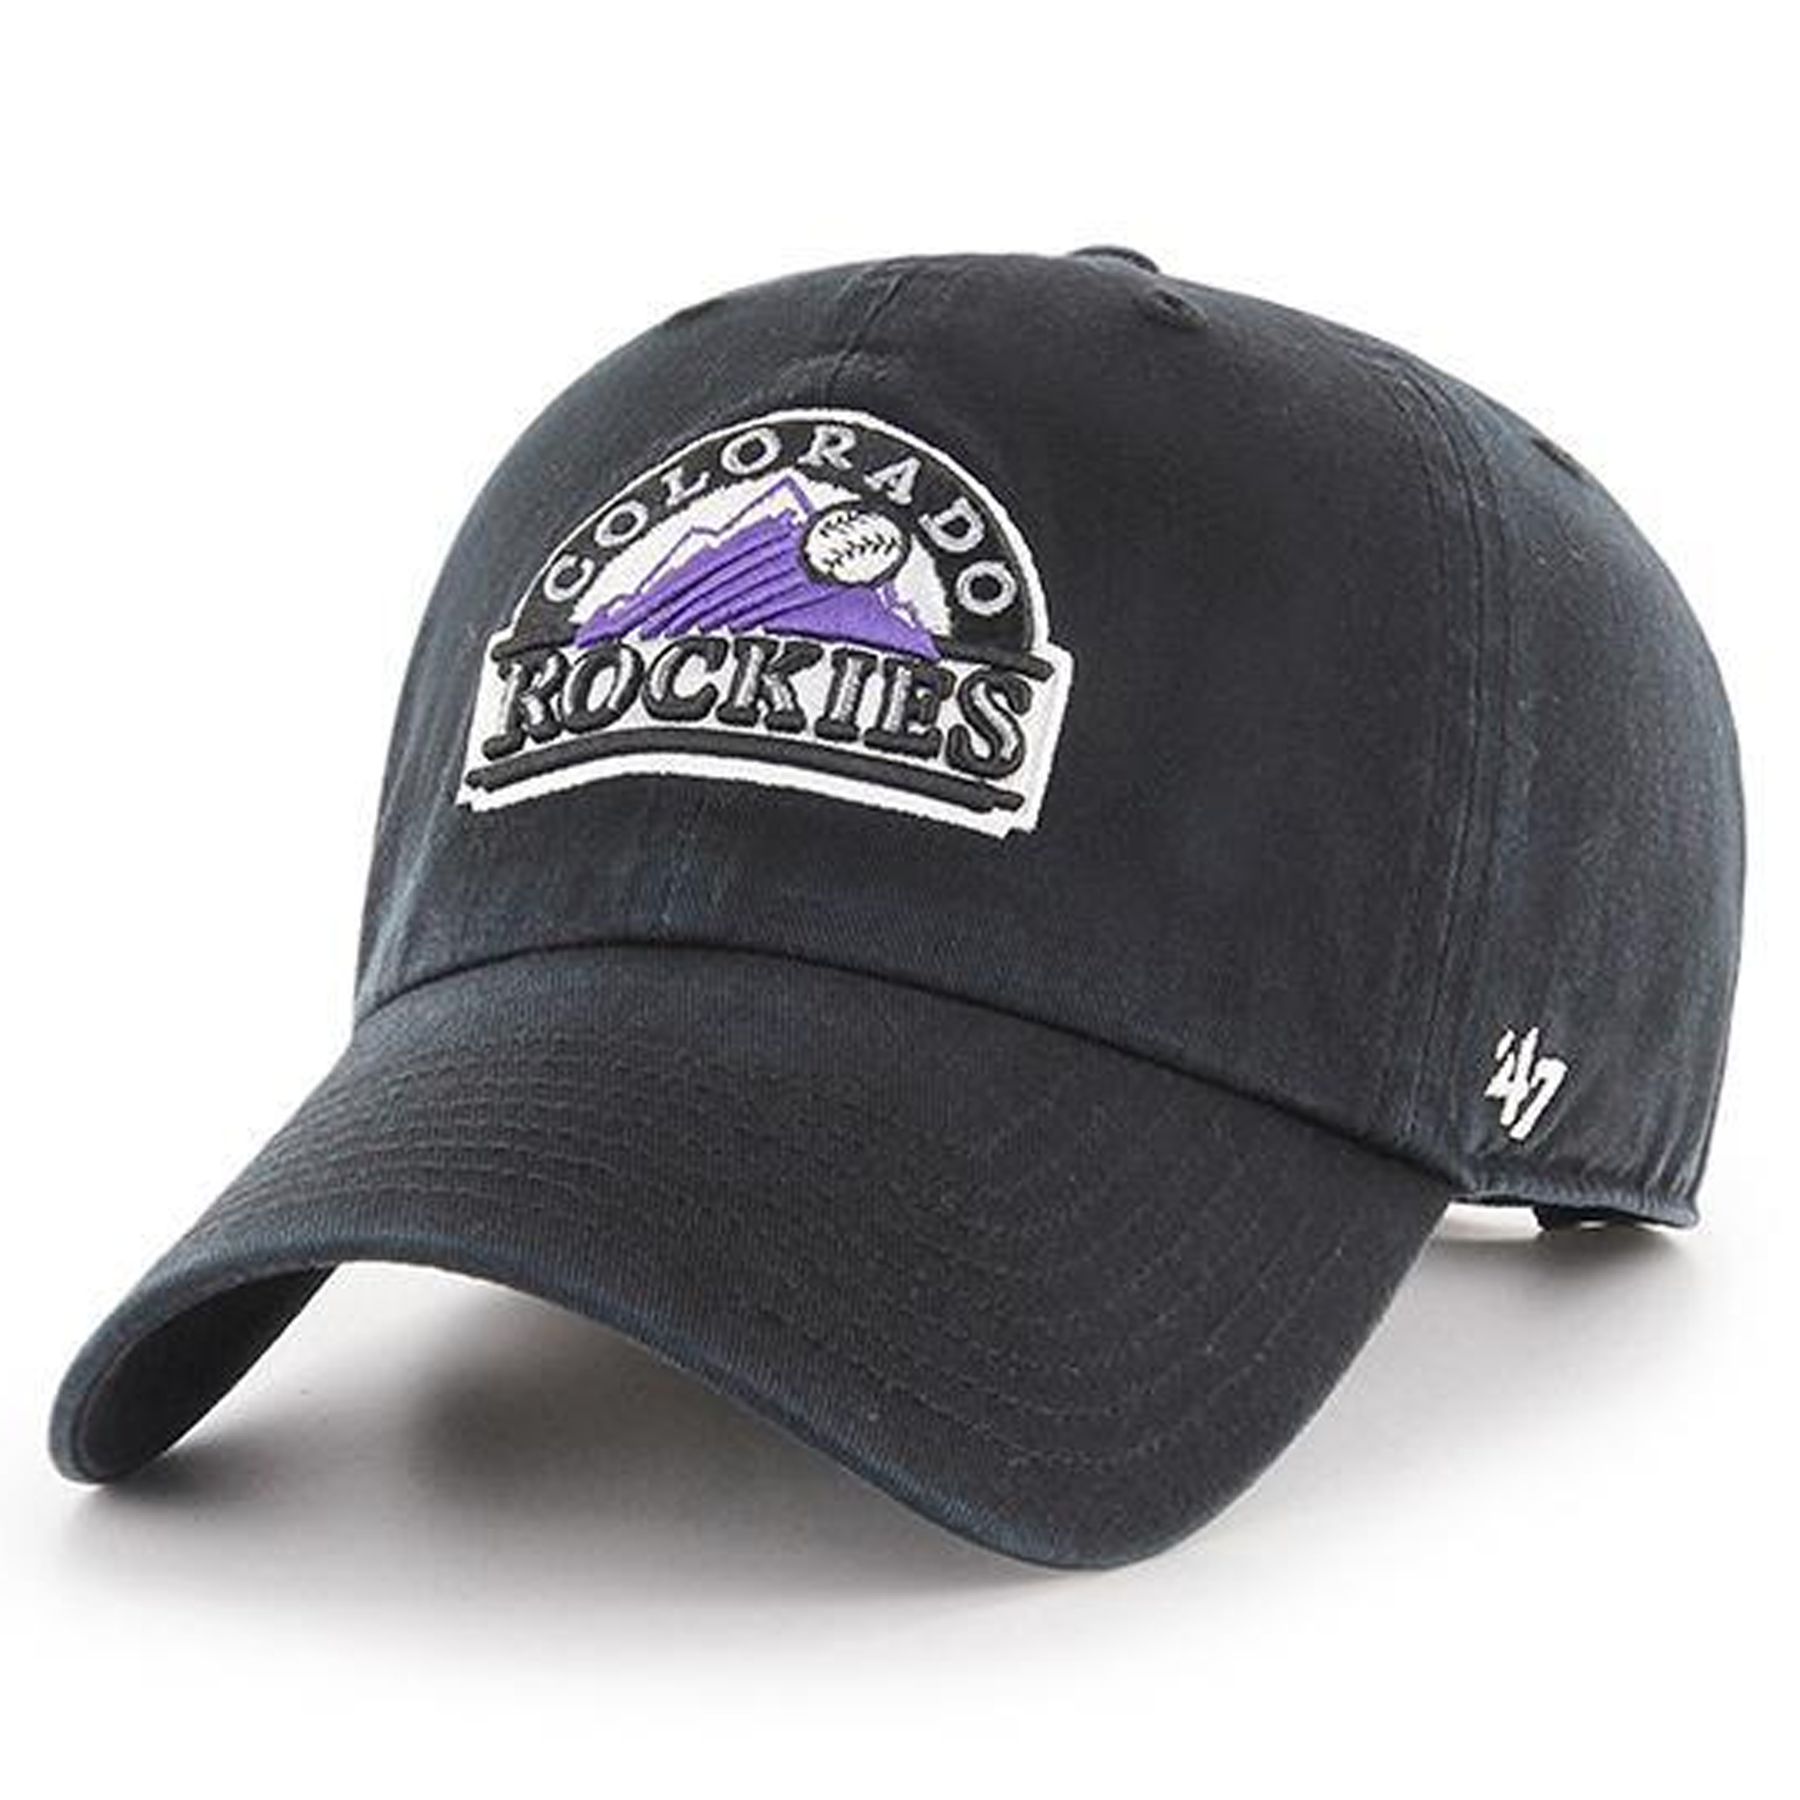 new product 9d536 0bc88 On the front of the vintage colorado rockies dad hat is the throwback colorado  rockies logo